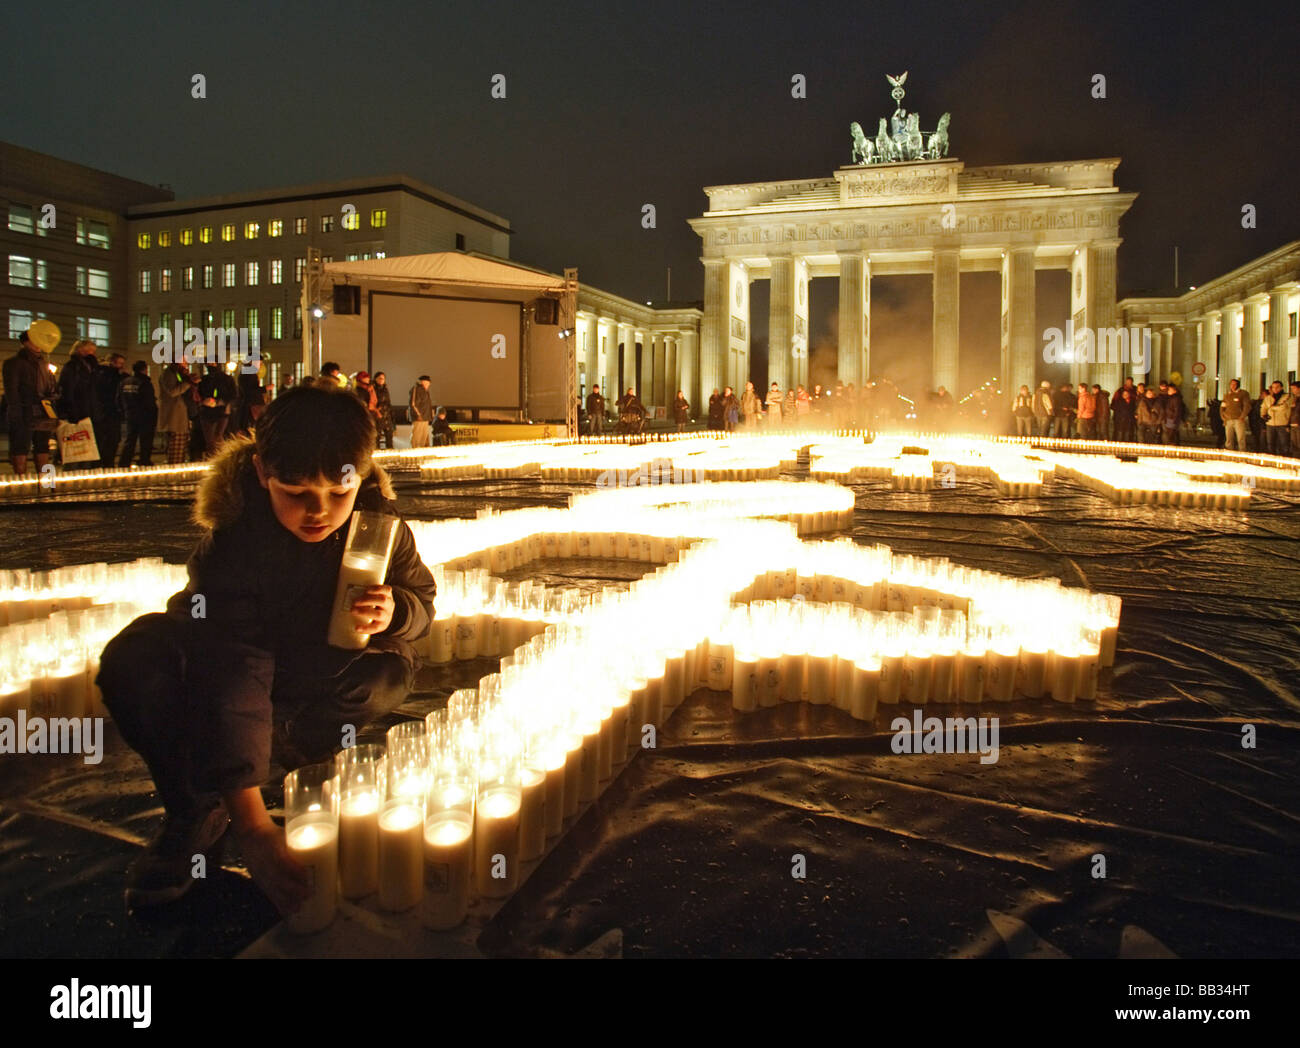 Celebration of the 60th anniversary of the Universal Declaration of Human Rights at Brandenburger Gate - Stock Image